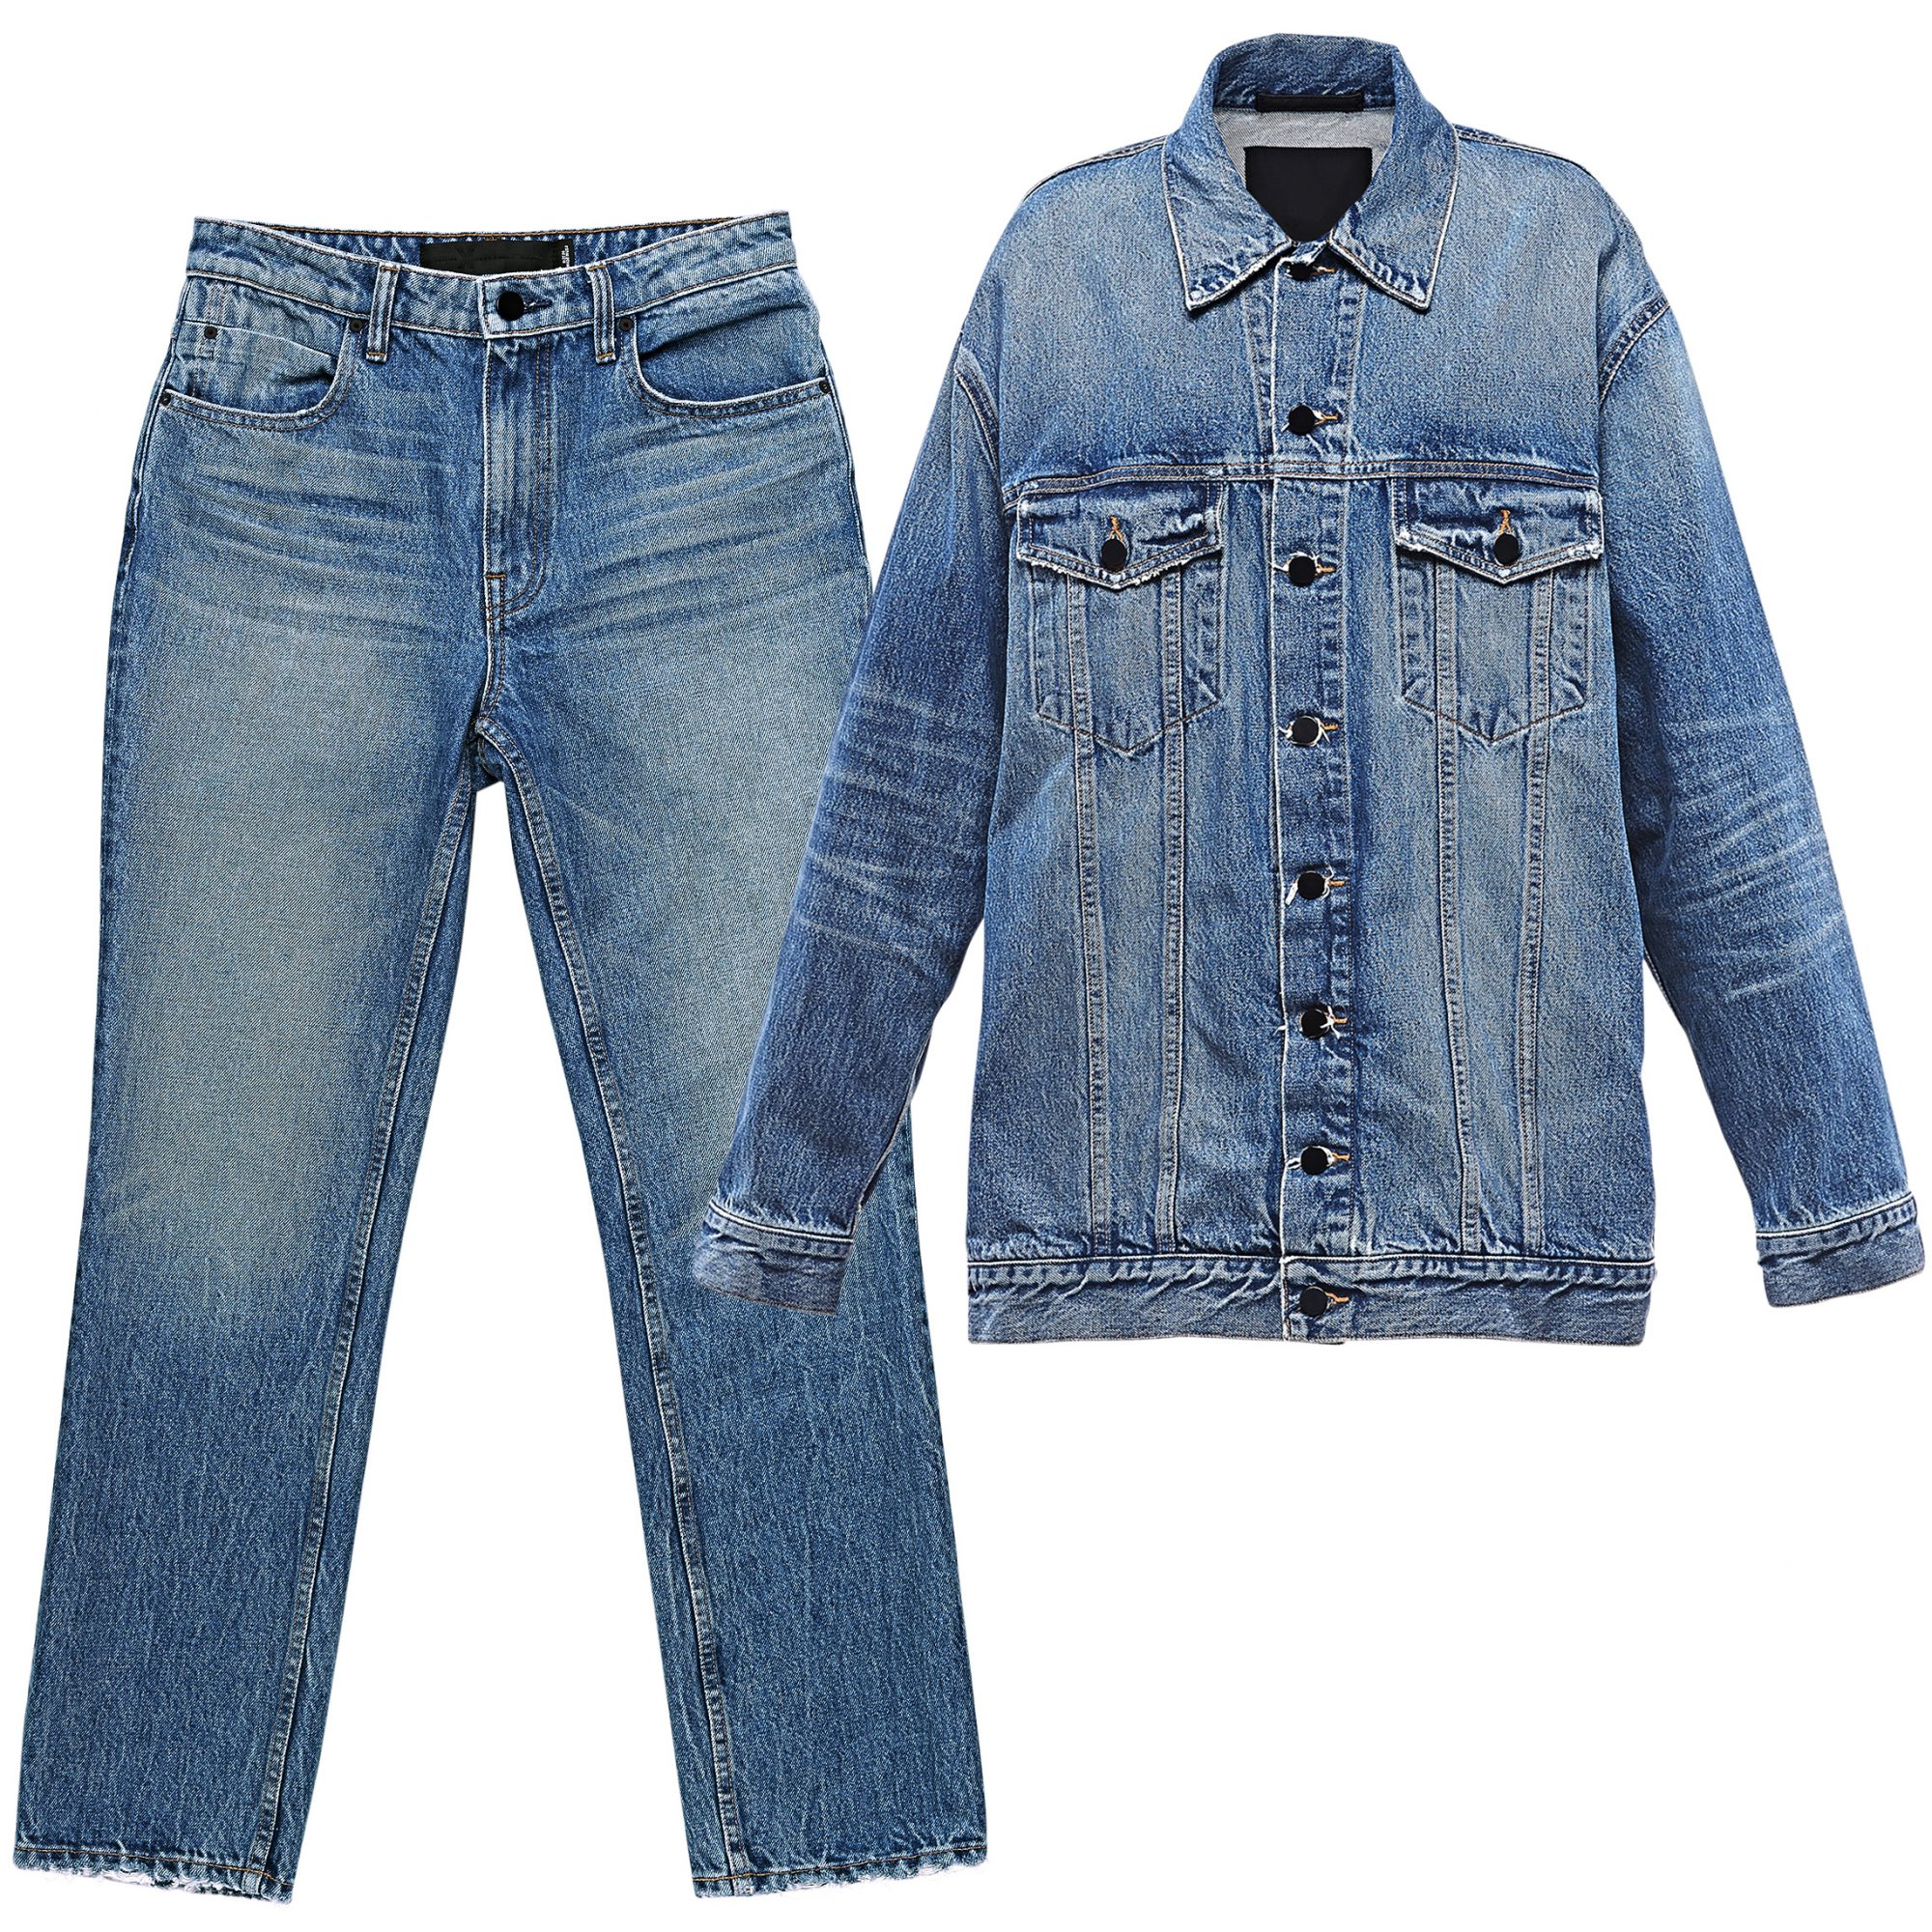 <p><strong>Denim obsessions</strong></p>